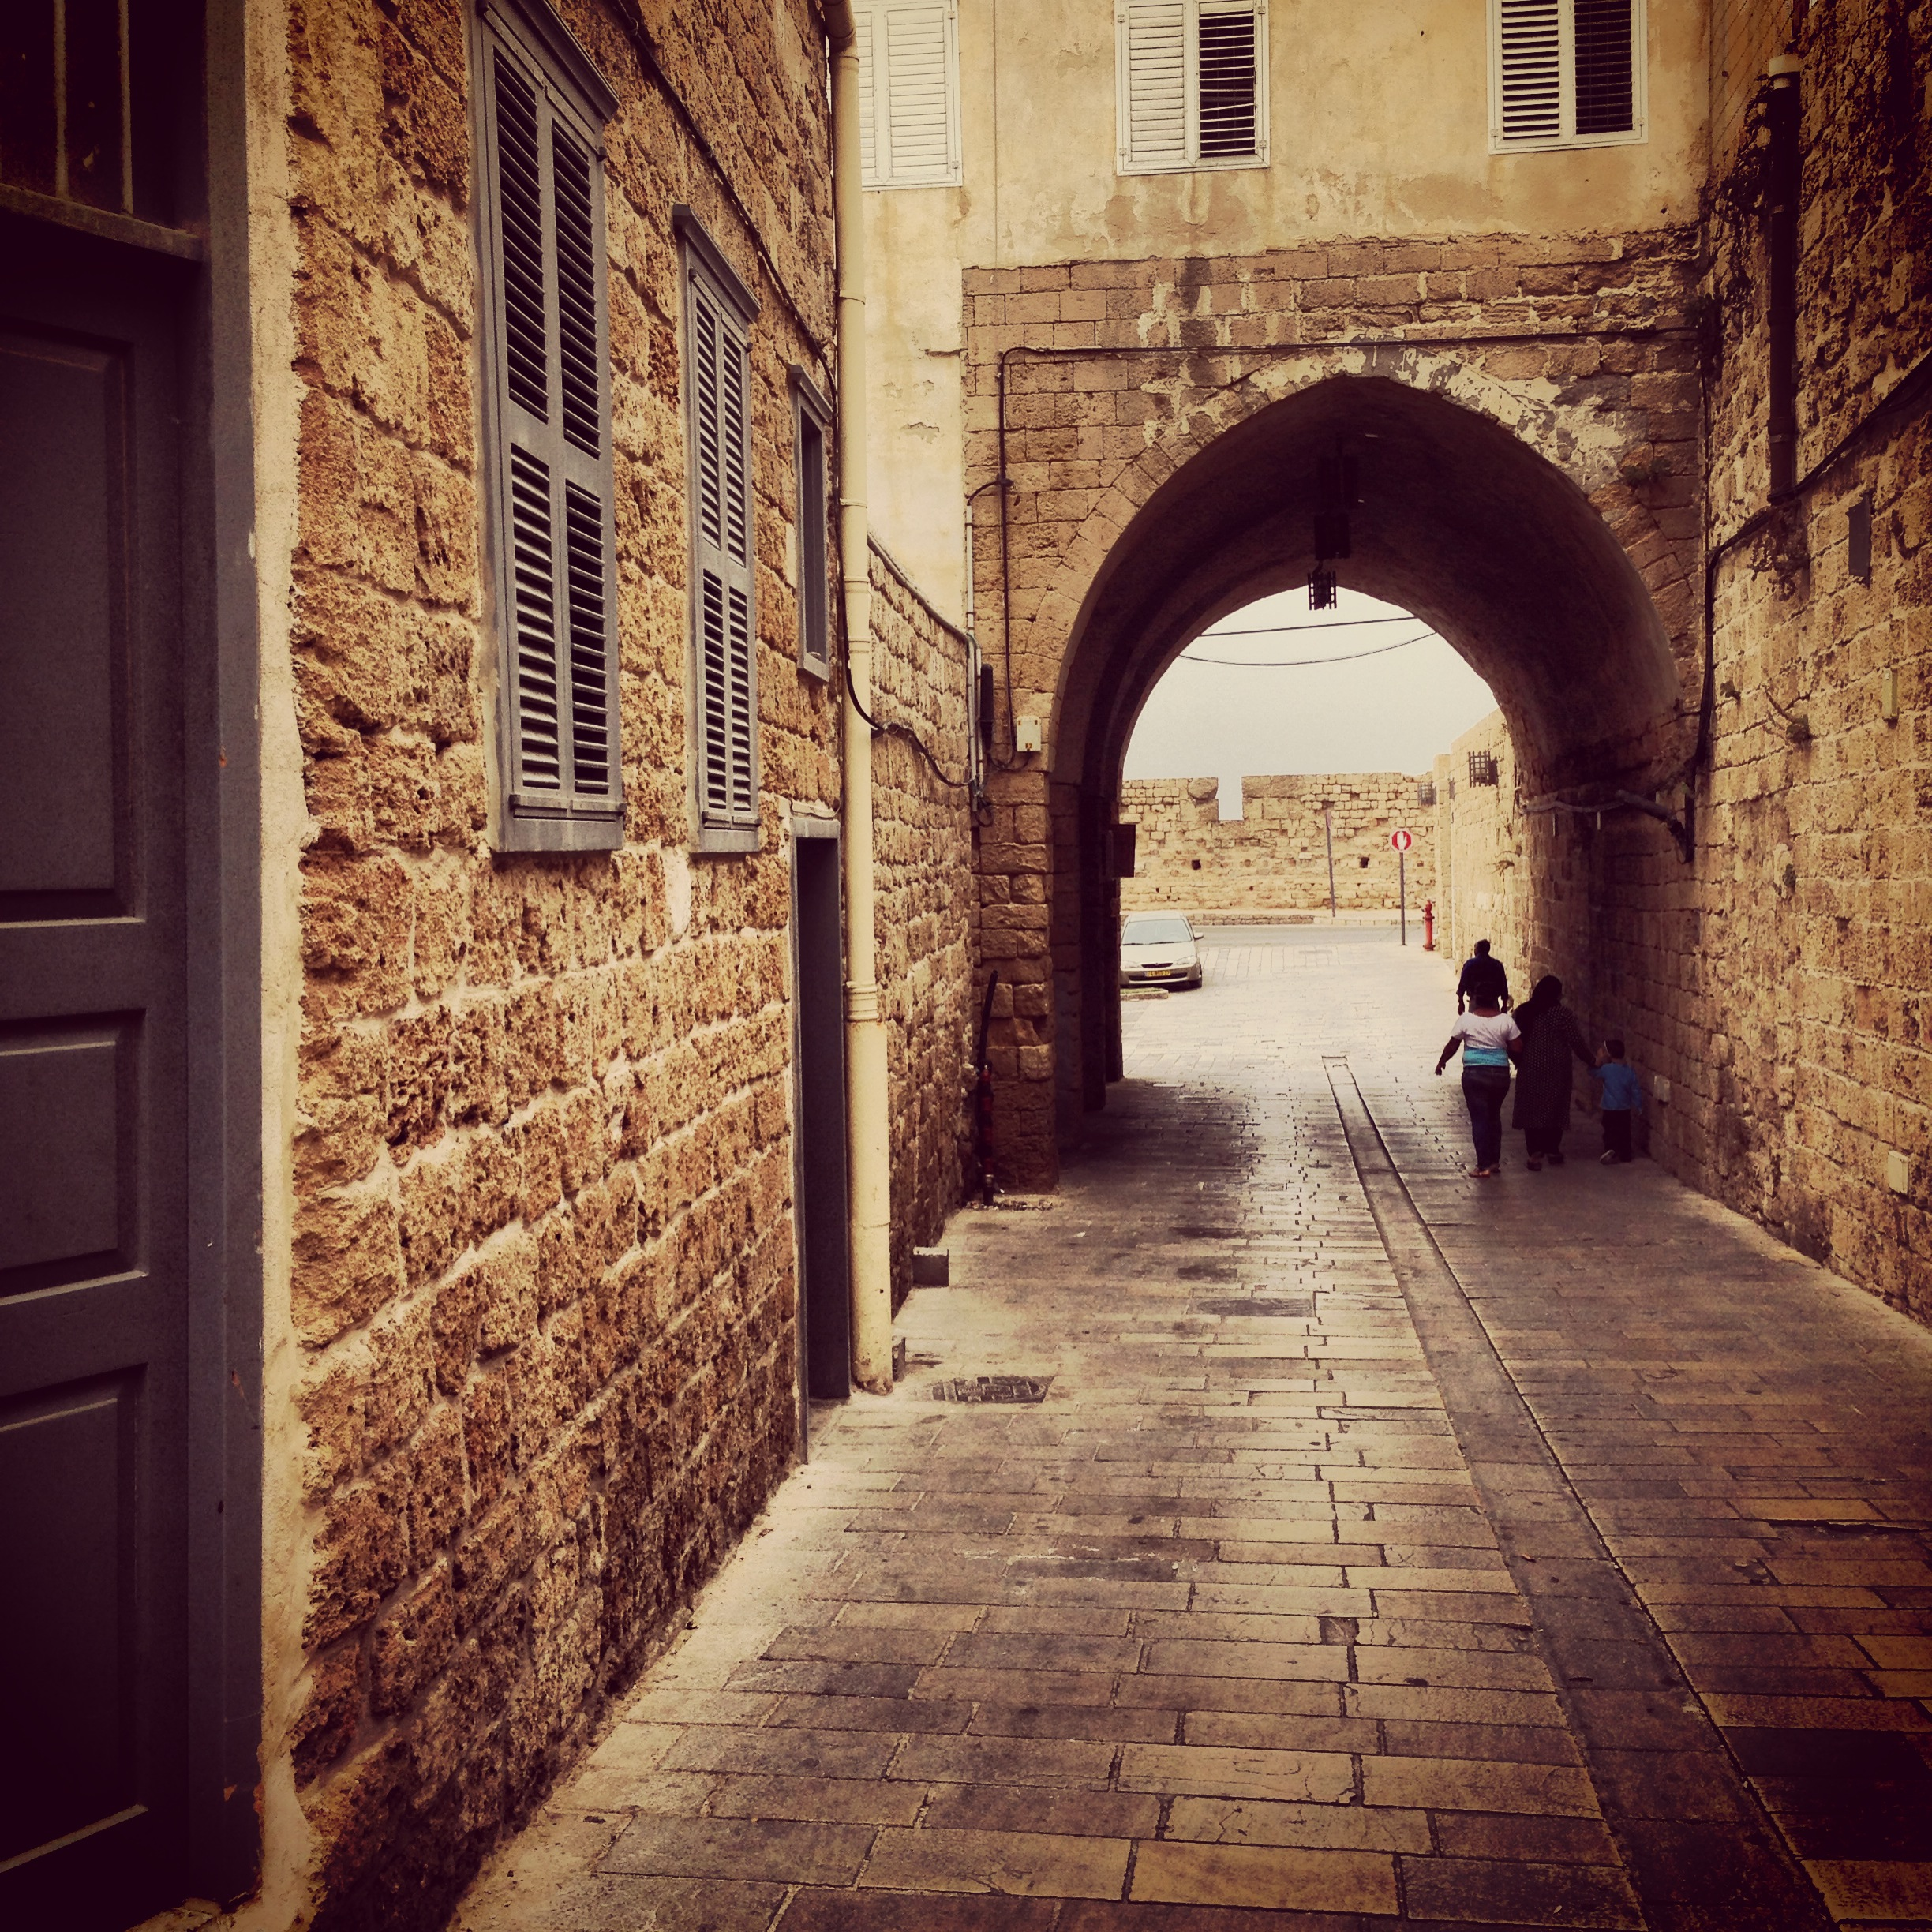 The Ancient City of Akko (Acre), a UNESCO World Heritage Site